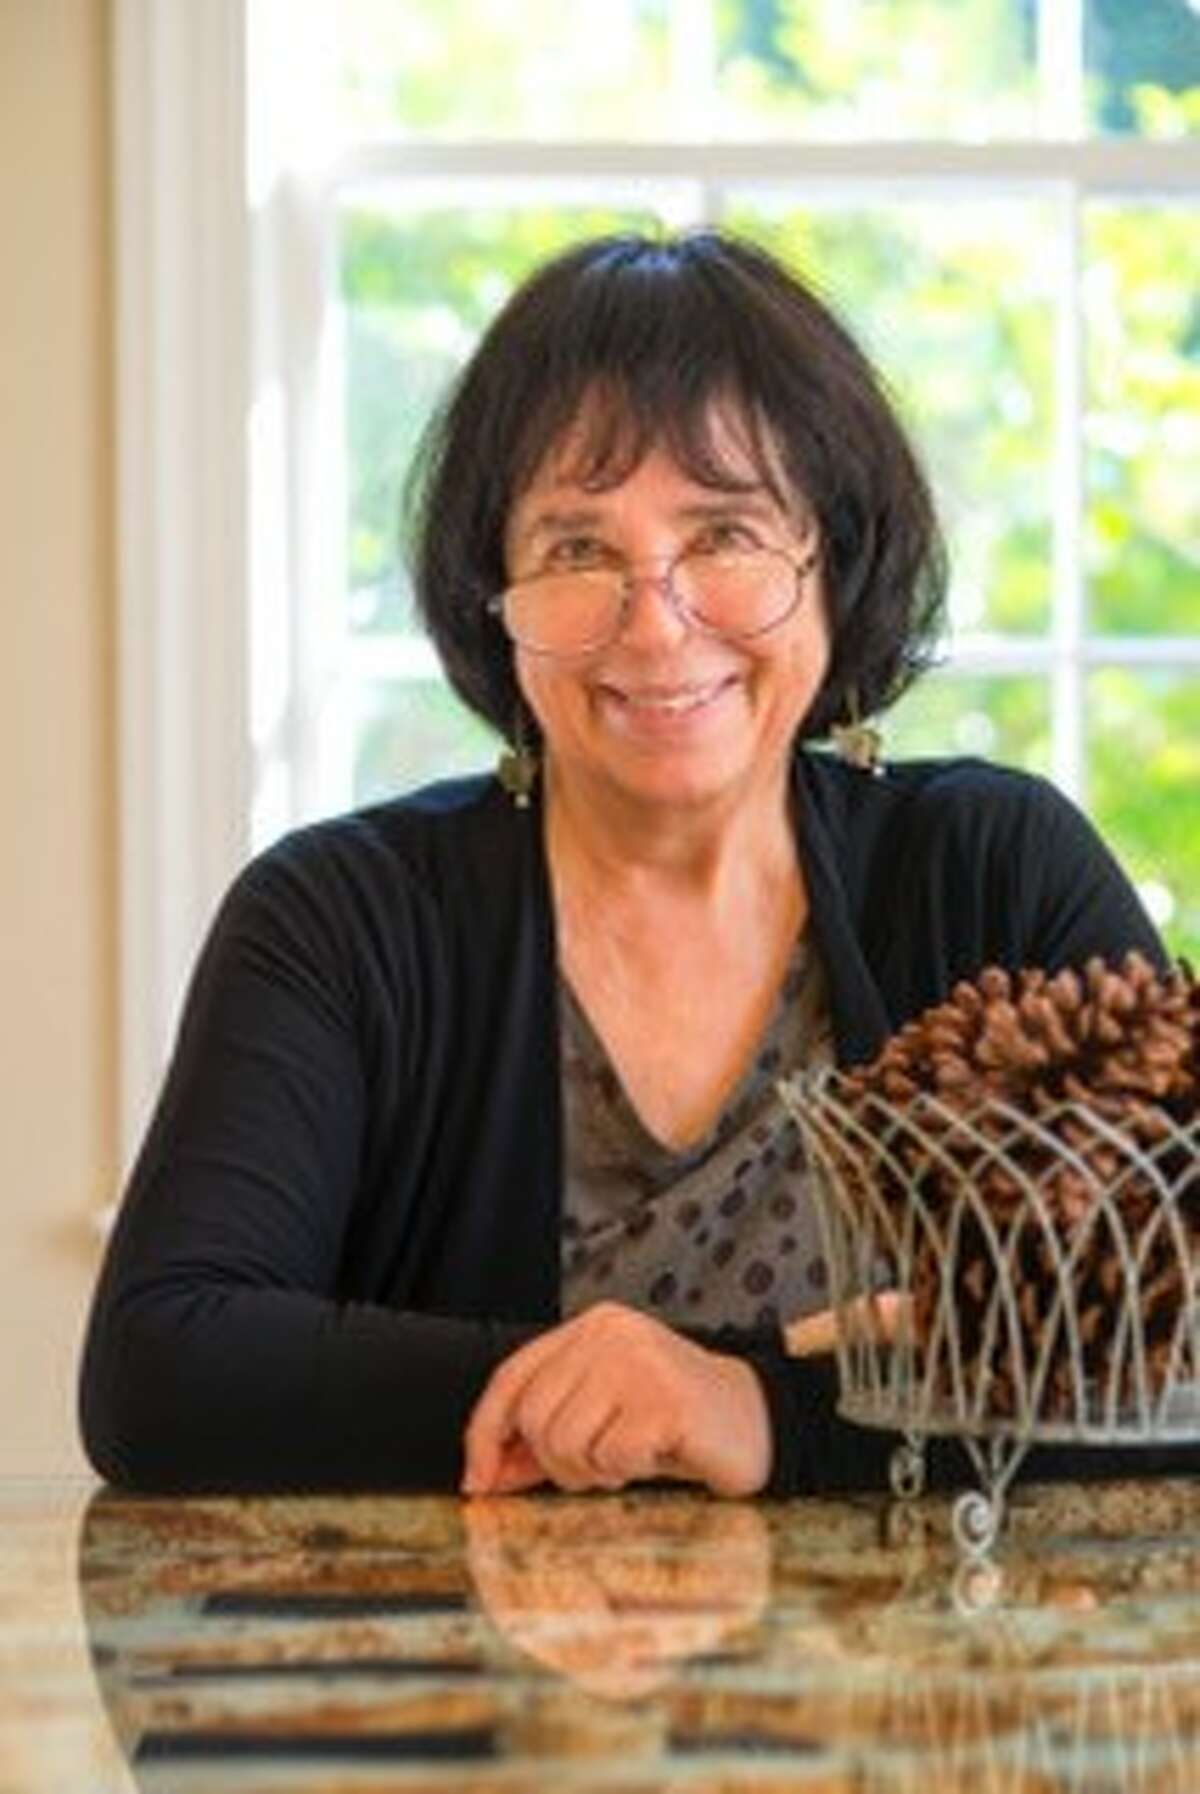 Jane Yolen, a young adult fantasy writer, will appear at the Northshire Book Store in Saratoga Springs on Friday, April 27. (Provided)